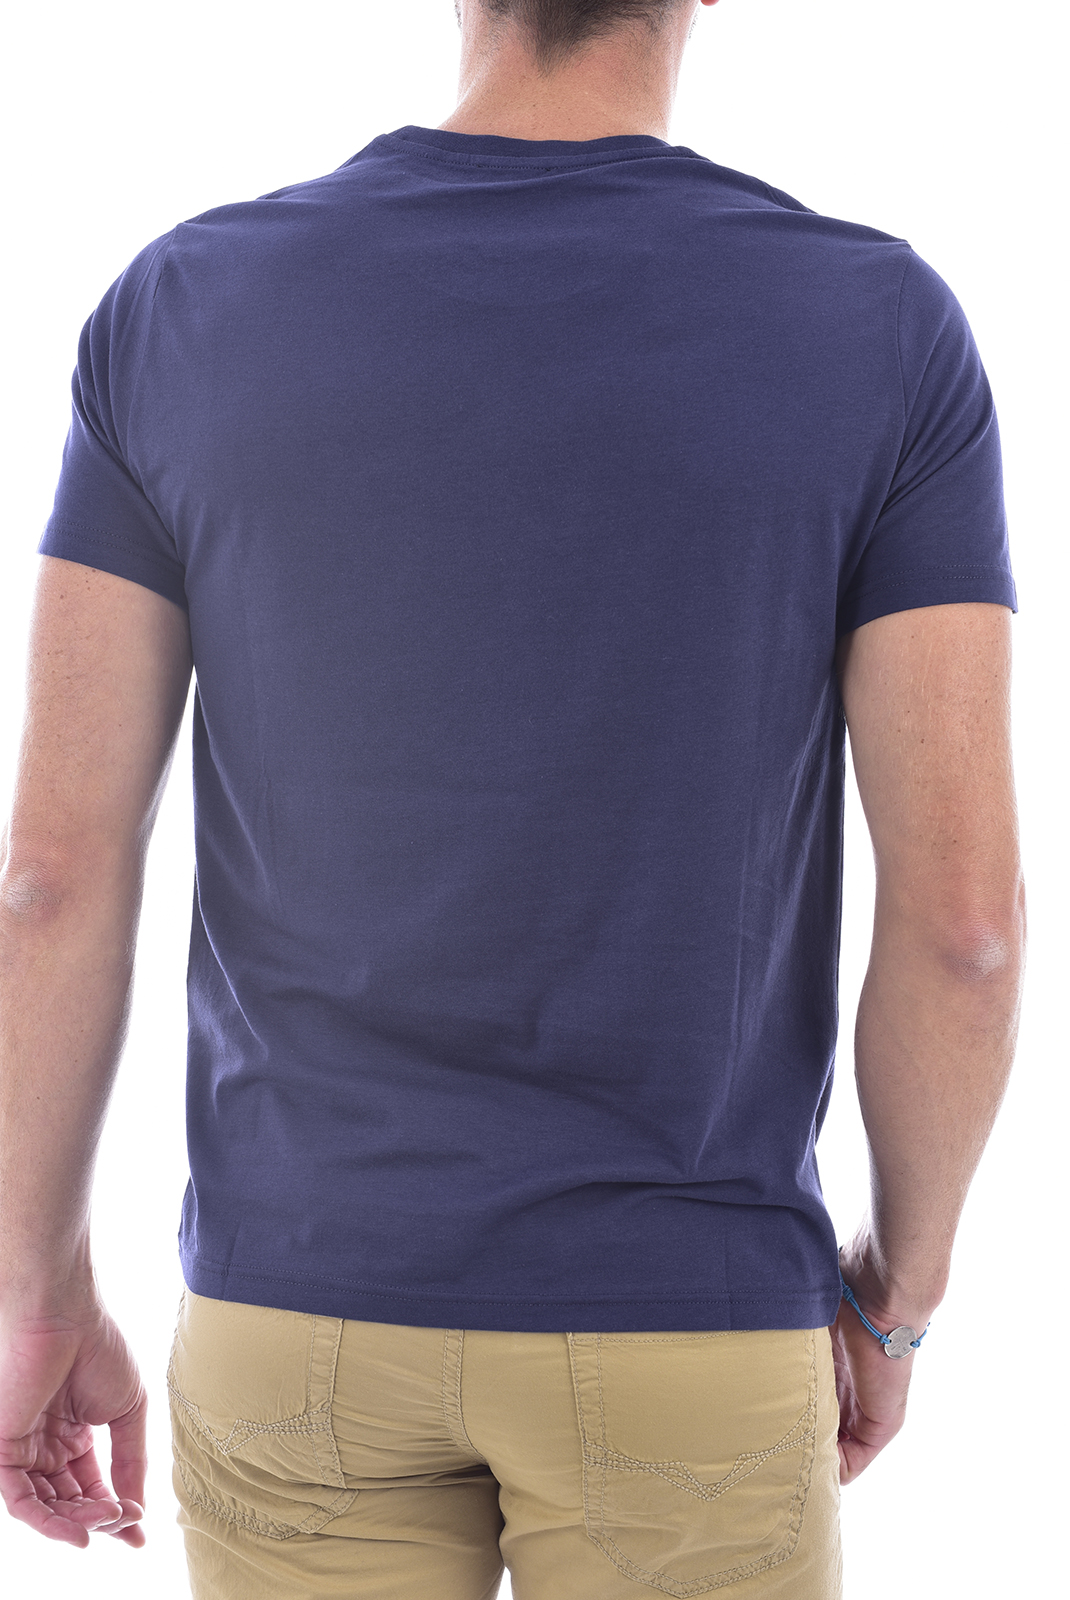 T-S manches courtes  Emporio armani 211818 0P460 06935 BLU NAVY